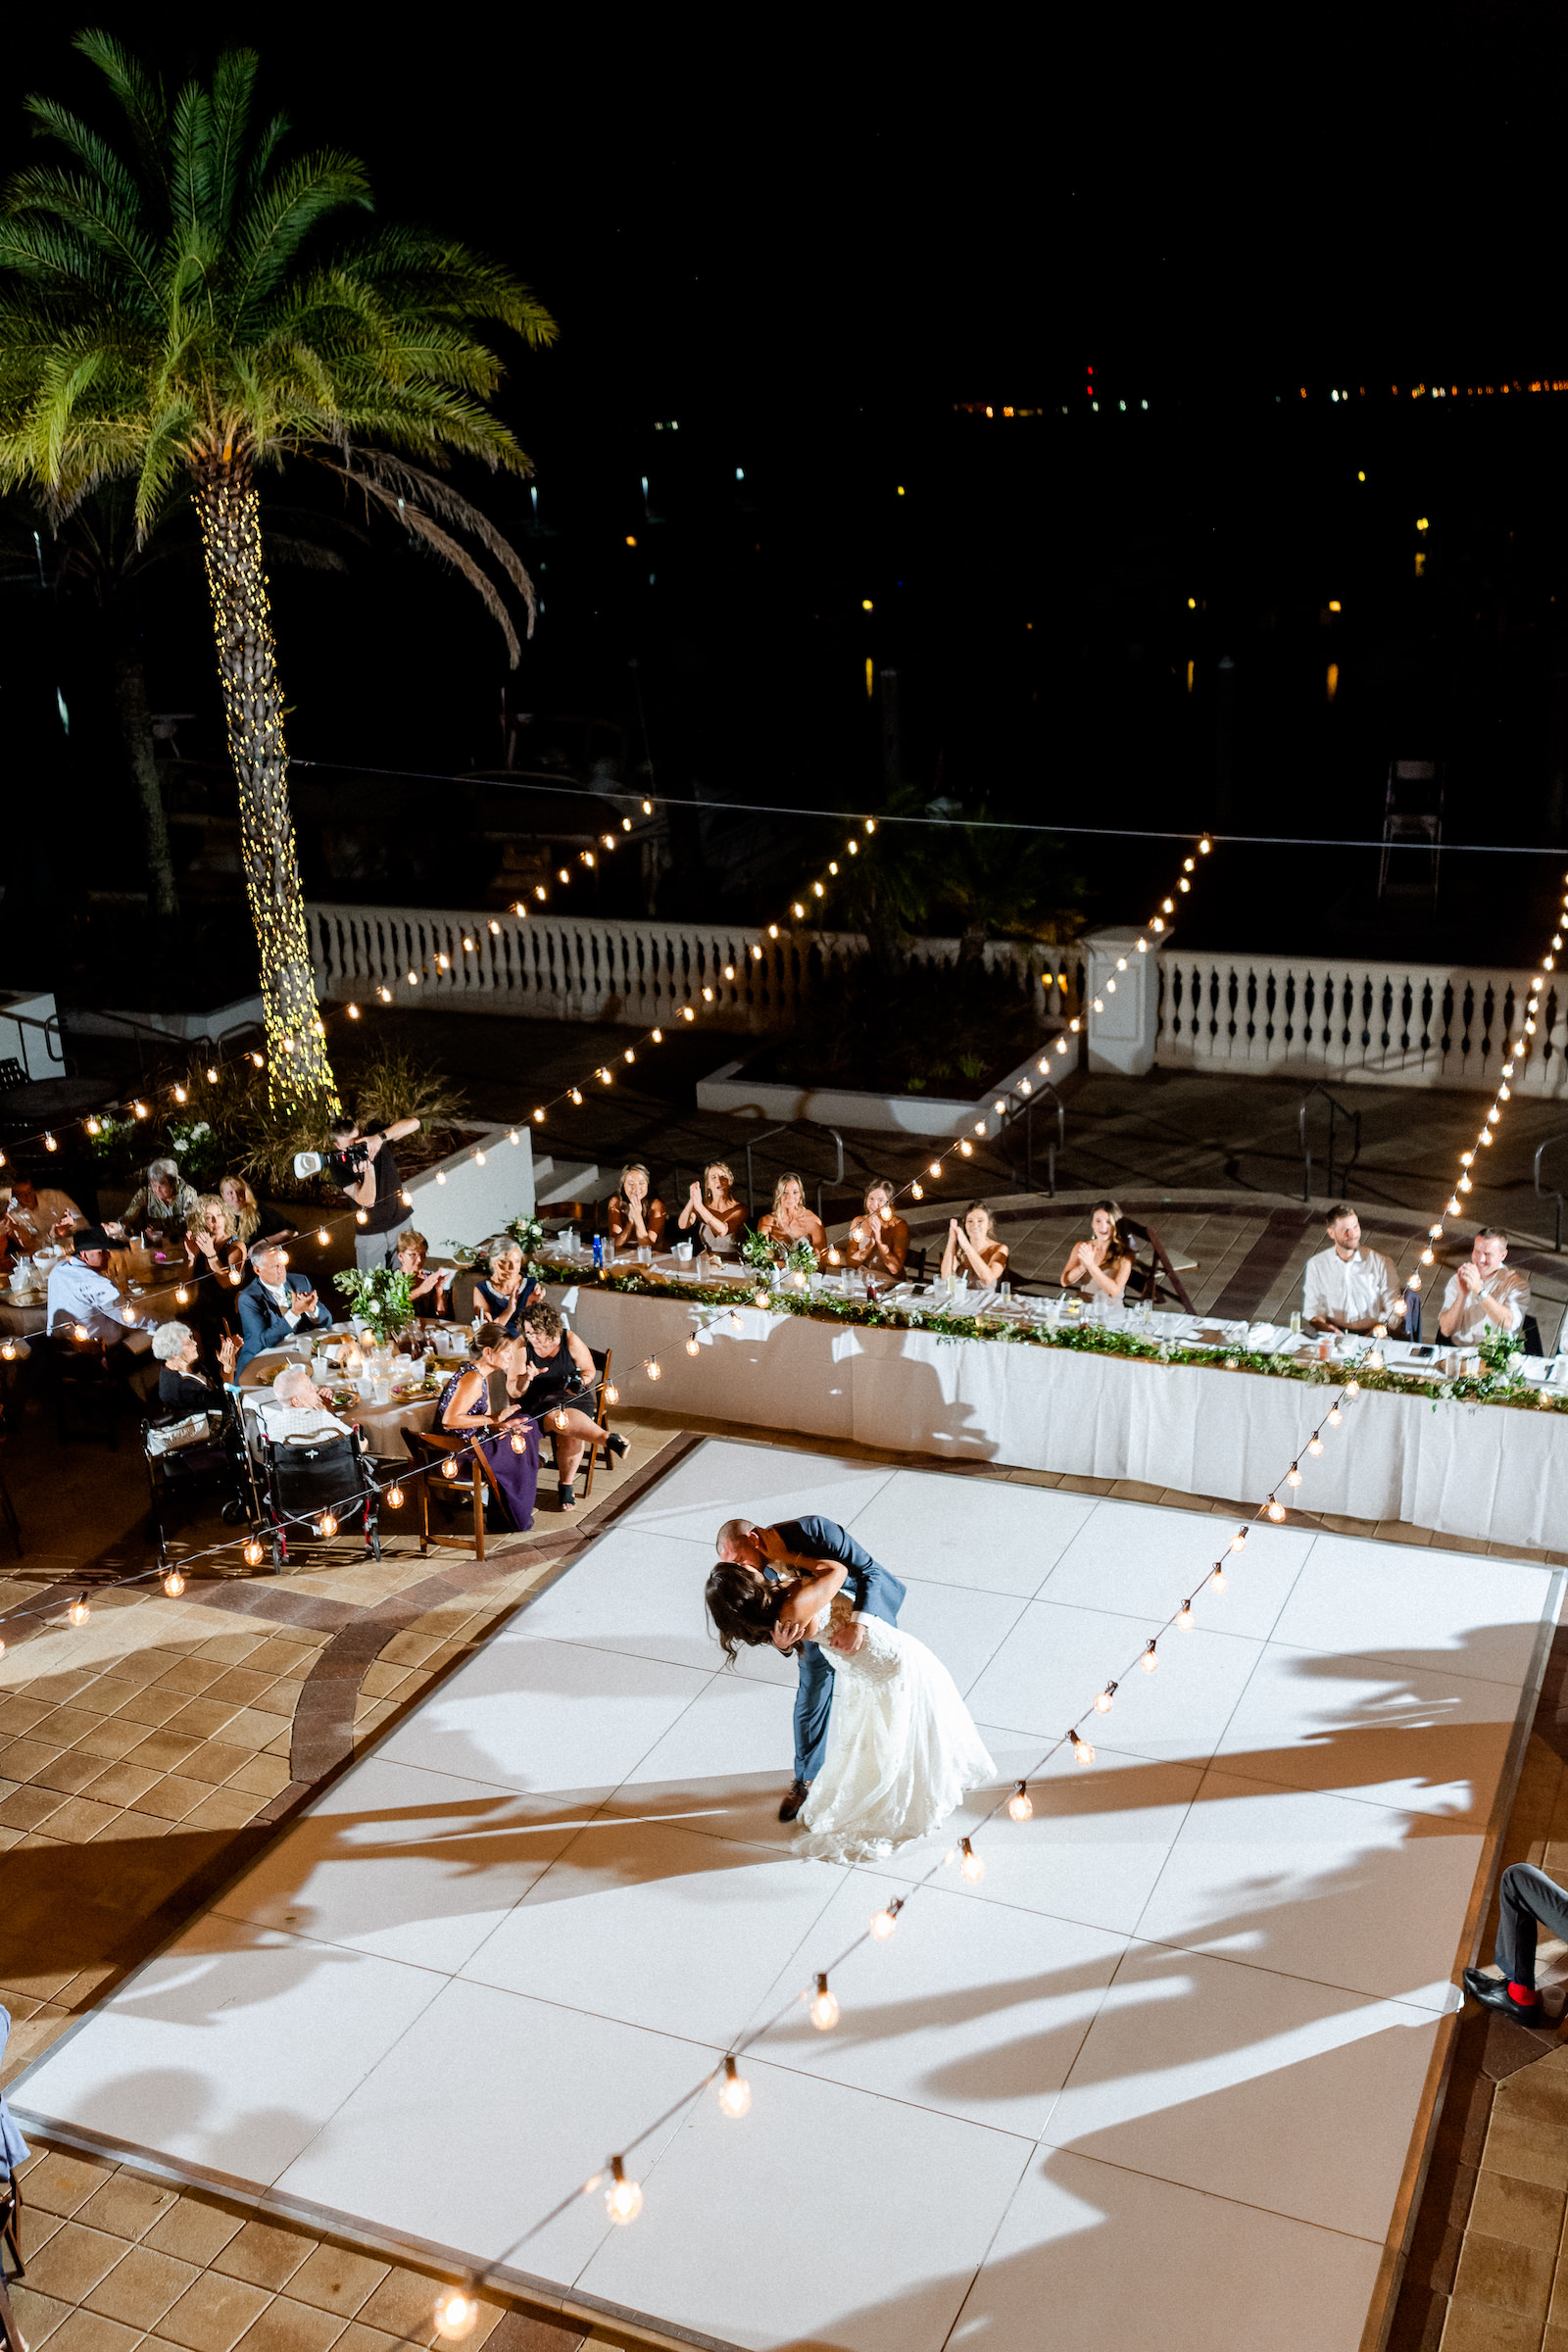 Bride and Groom First Dance on white Dance Floor under Canopy String Lights | Outdoor wedding Reception at Tampa wedding Venue Westshore Yacht Club | Long head table with greenery garland centerpieces